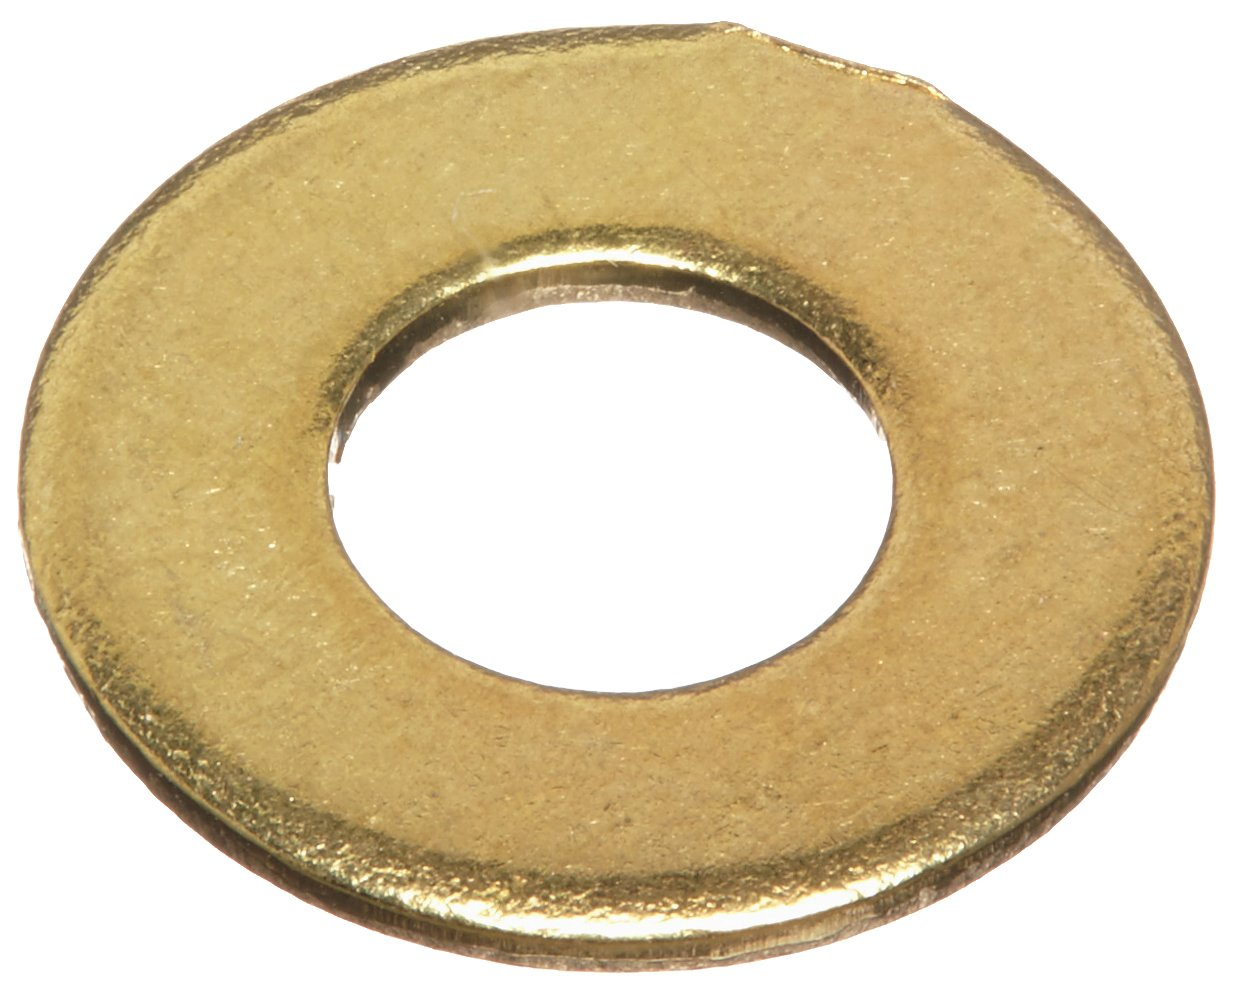 Brass Flat Washer, Plain Finish, 1/4'' Screw Size, 0.26'' ID, 9/16'' OD, 0.04'' Thick (Pack of 100)